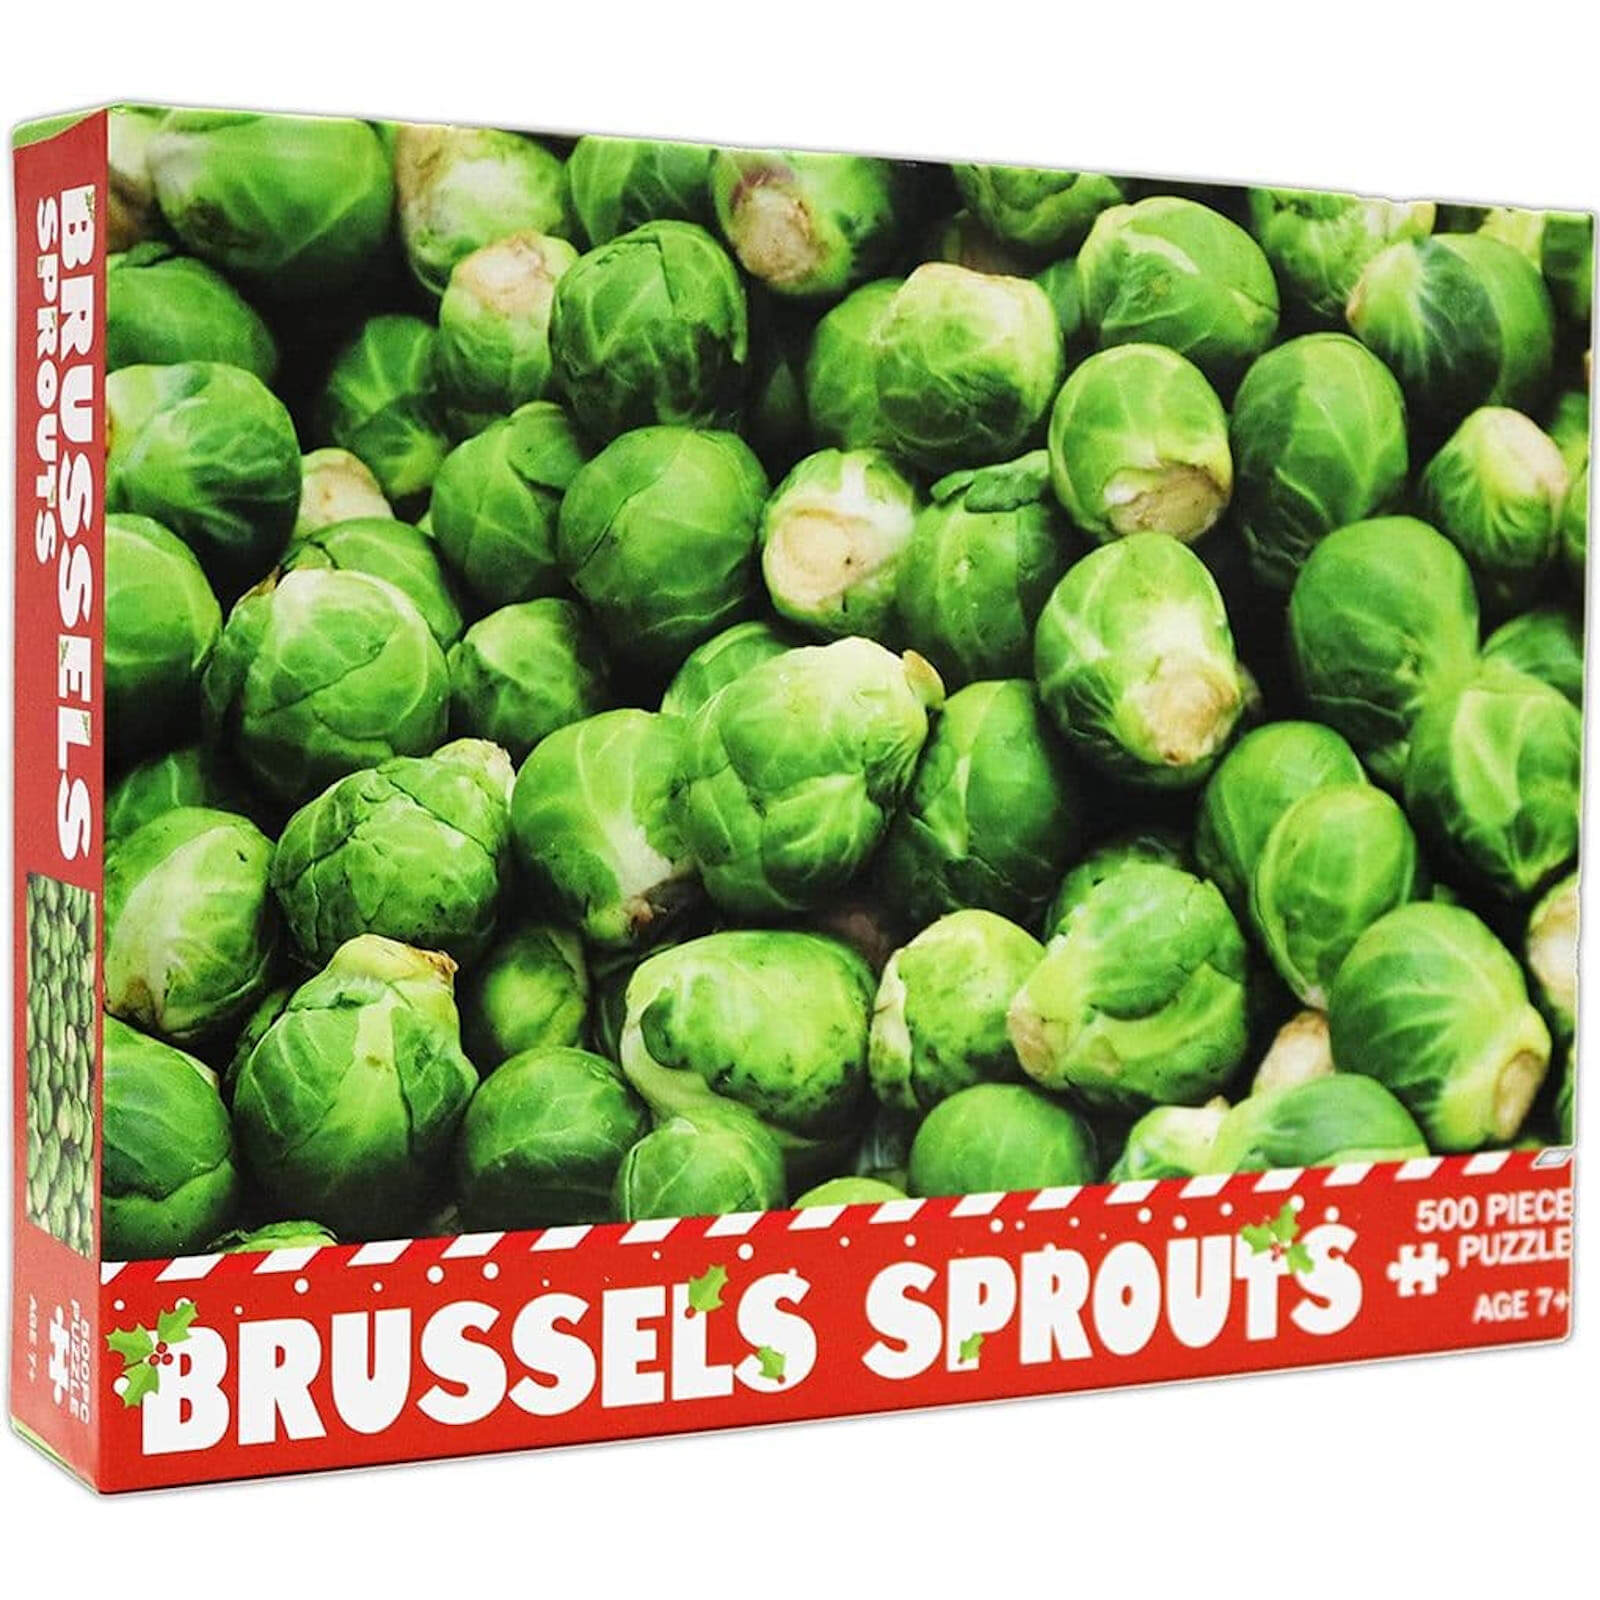 Image of Sprouts Jigsaw Puzzle (500 Pieces)